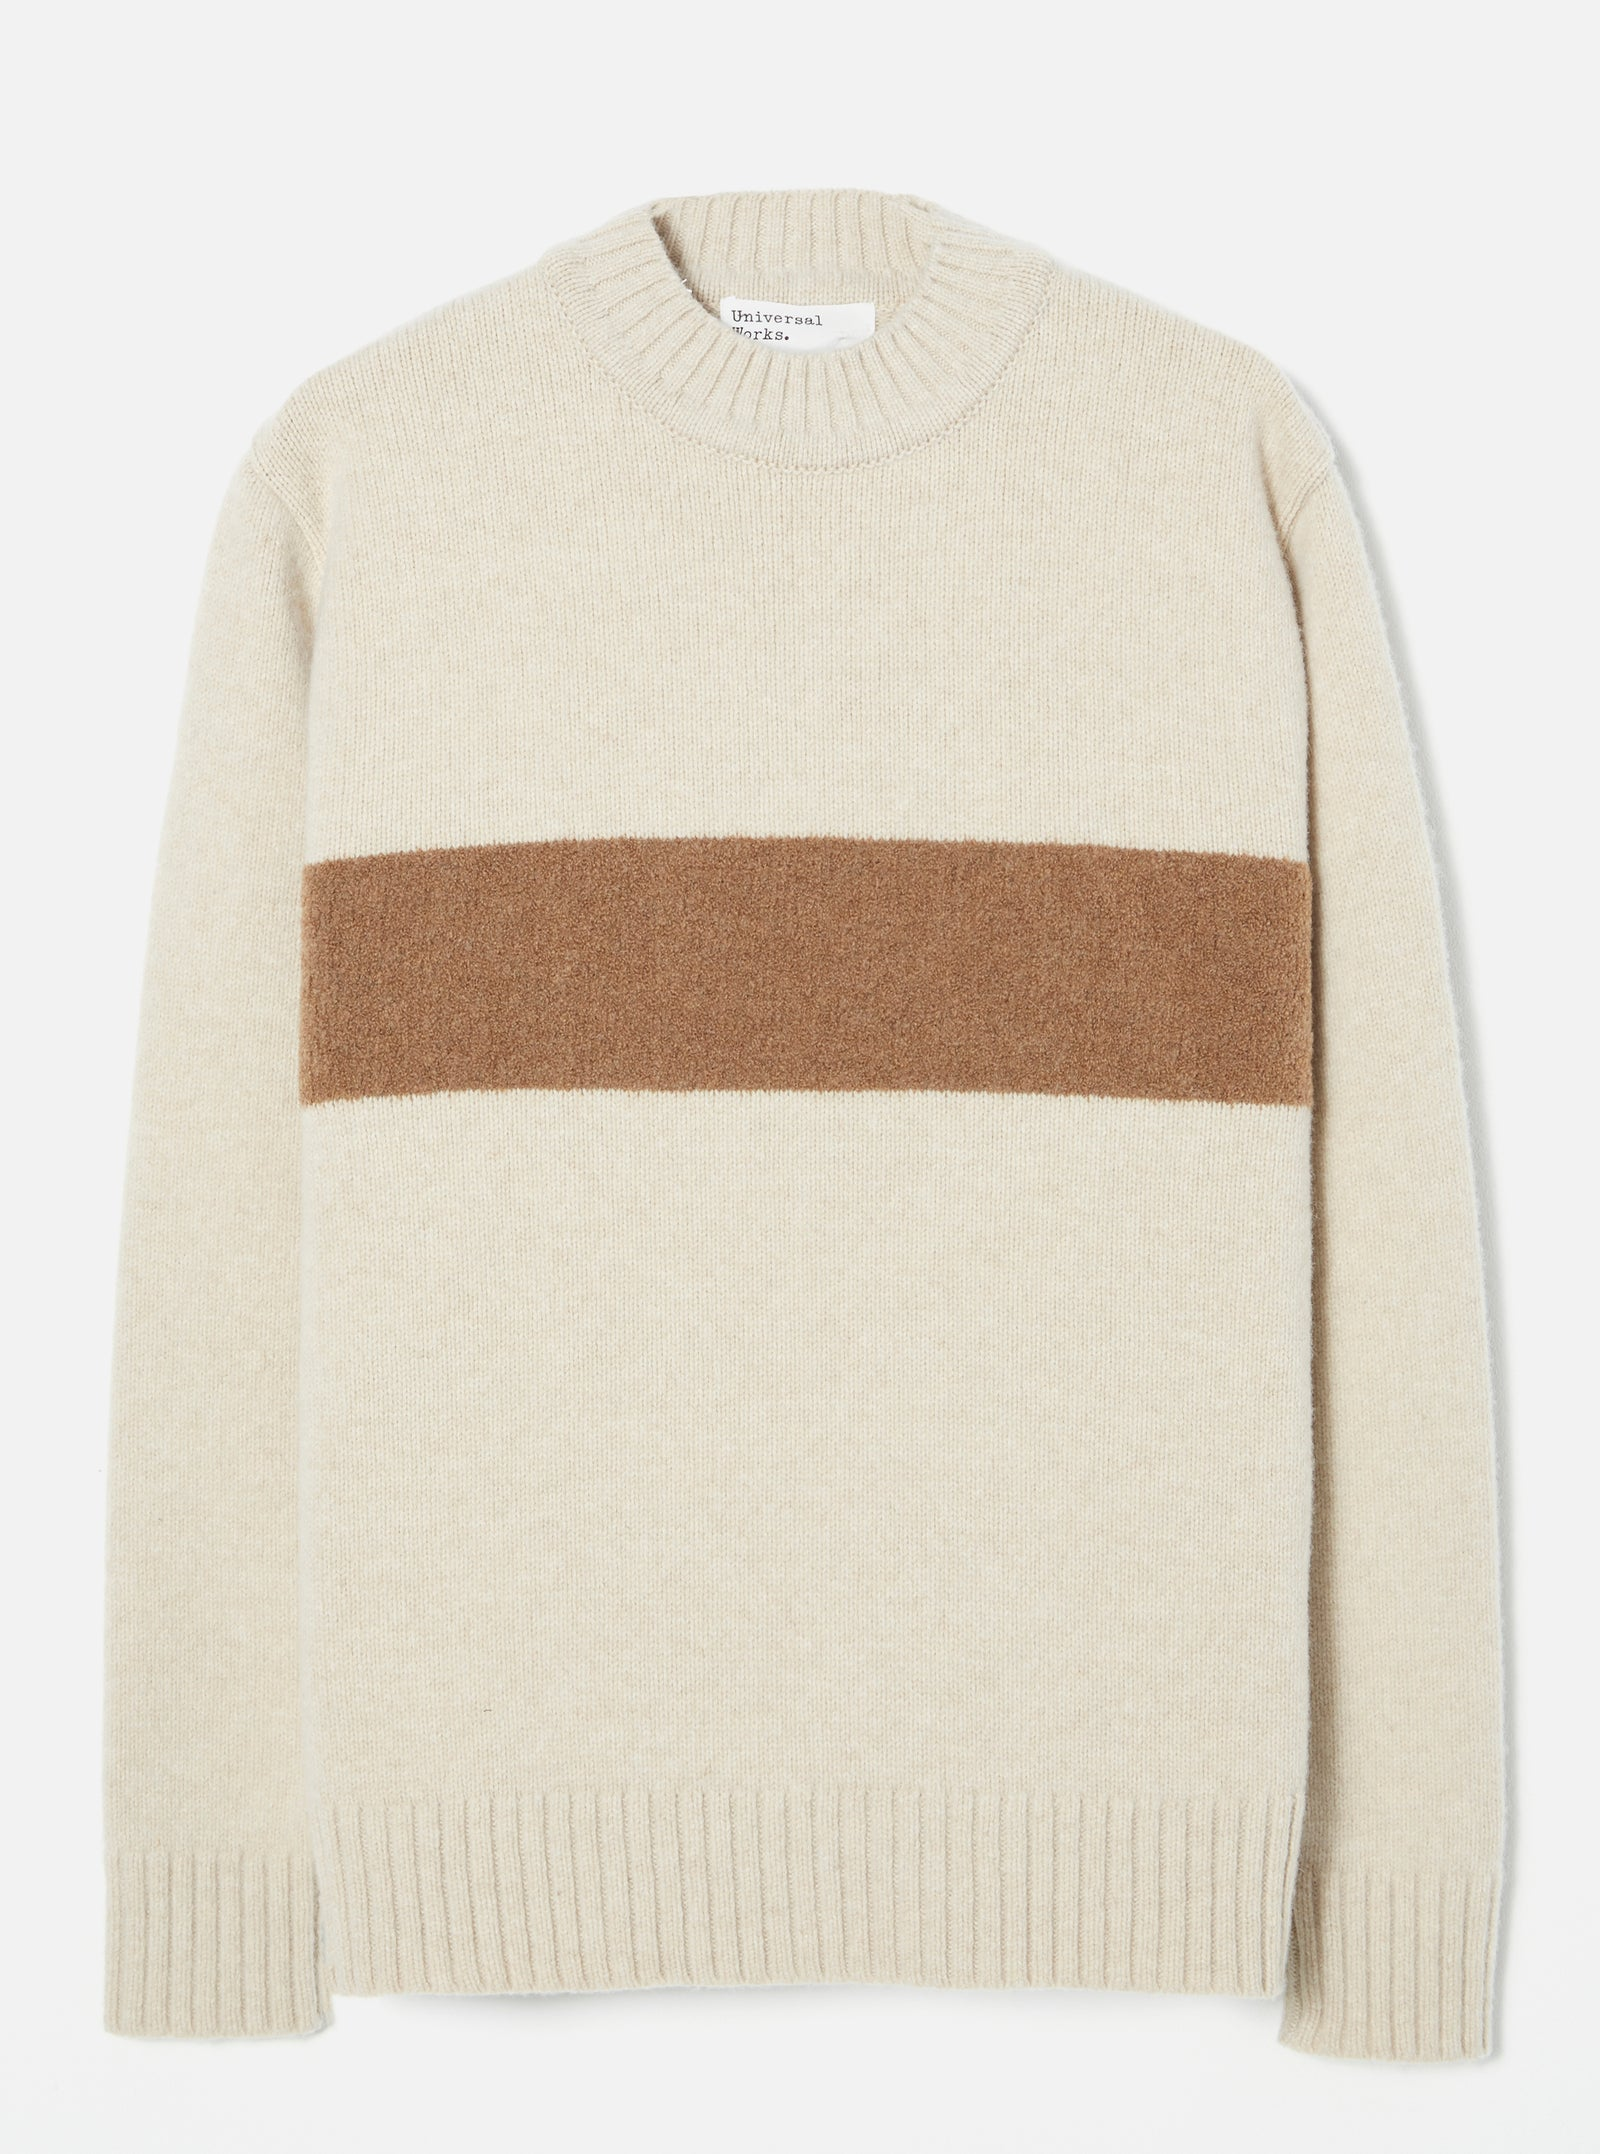 Universal Works Chest Stripe Crew in Sand Soft Wool